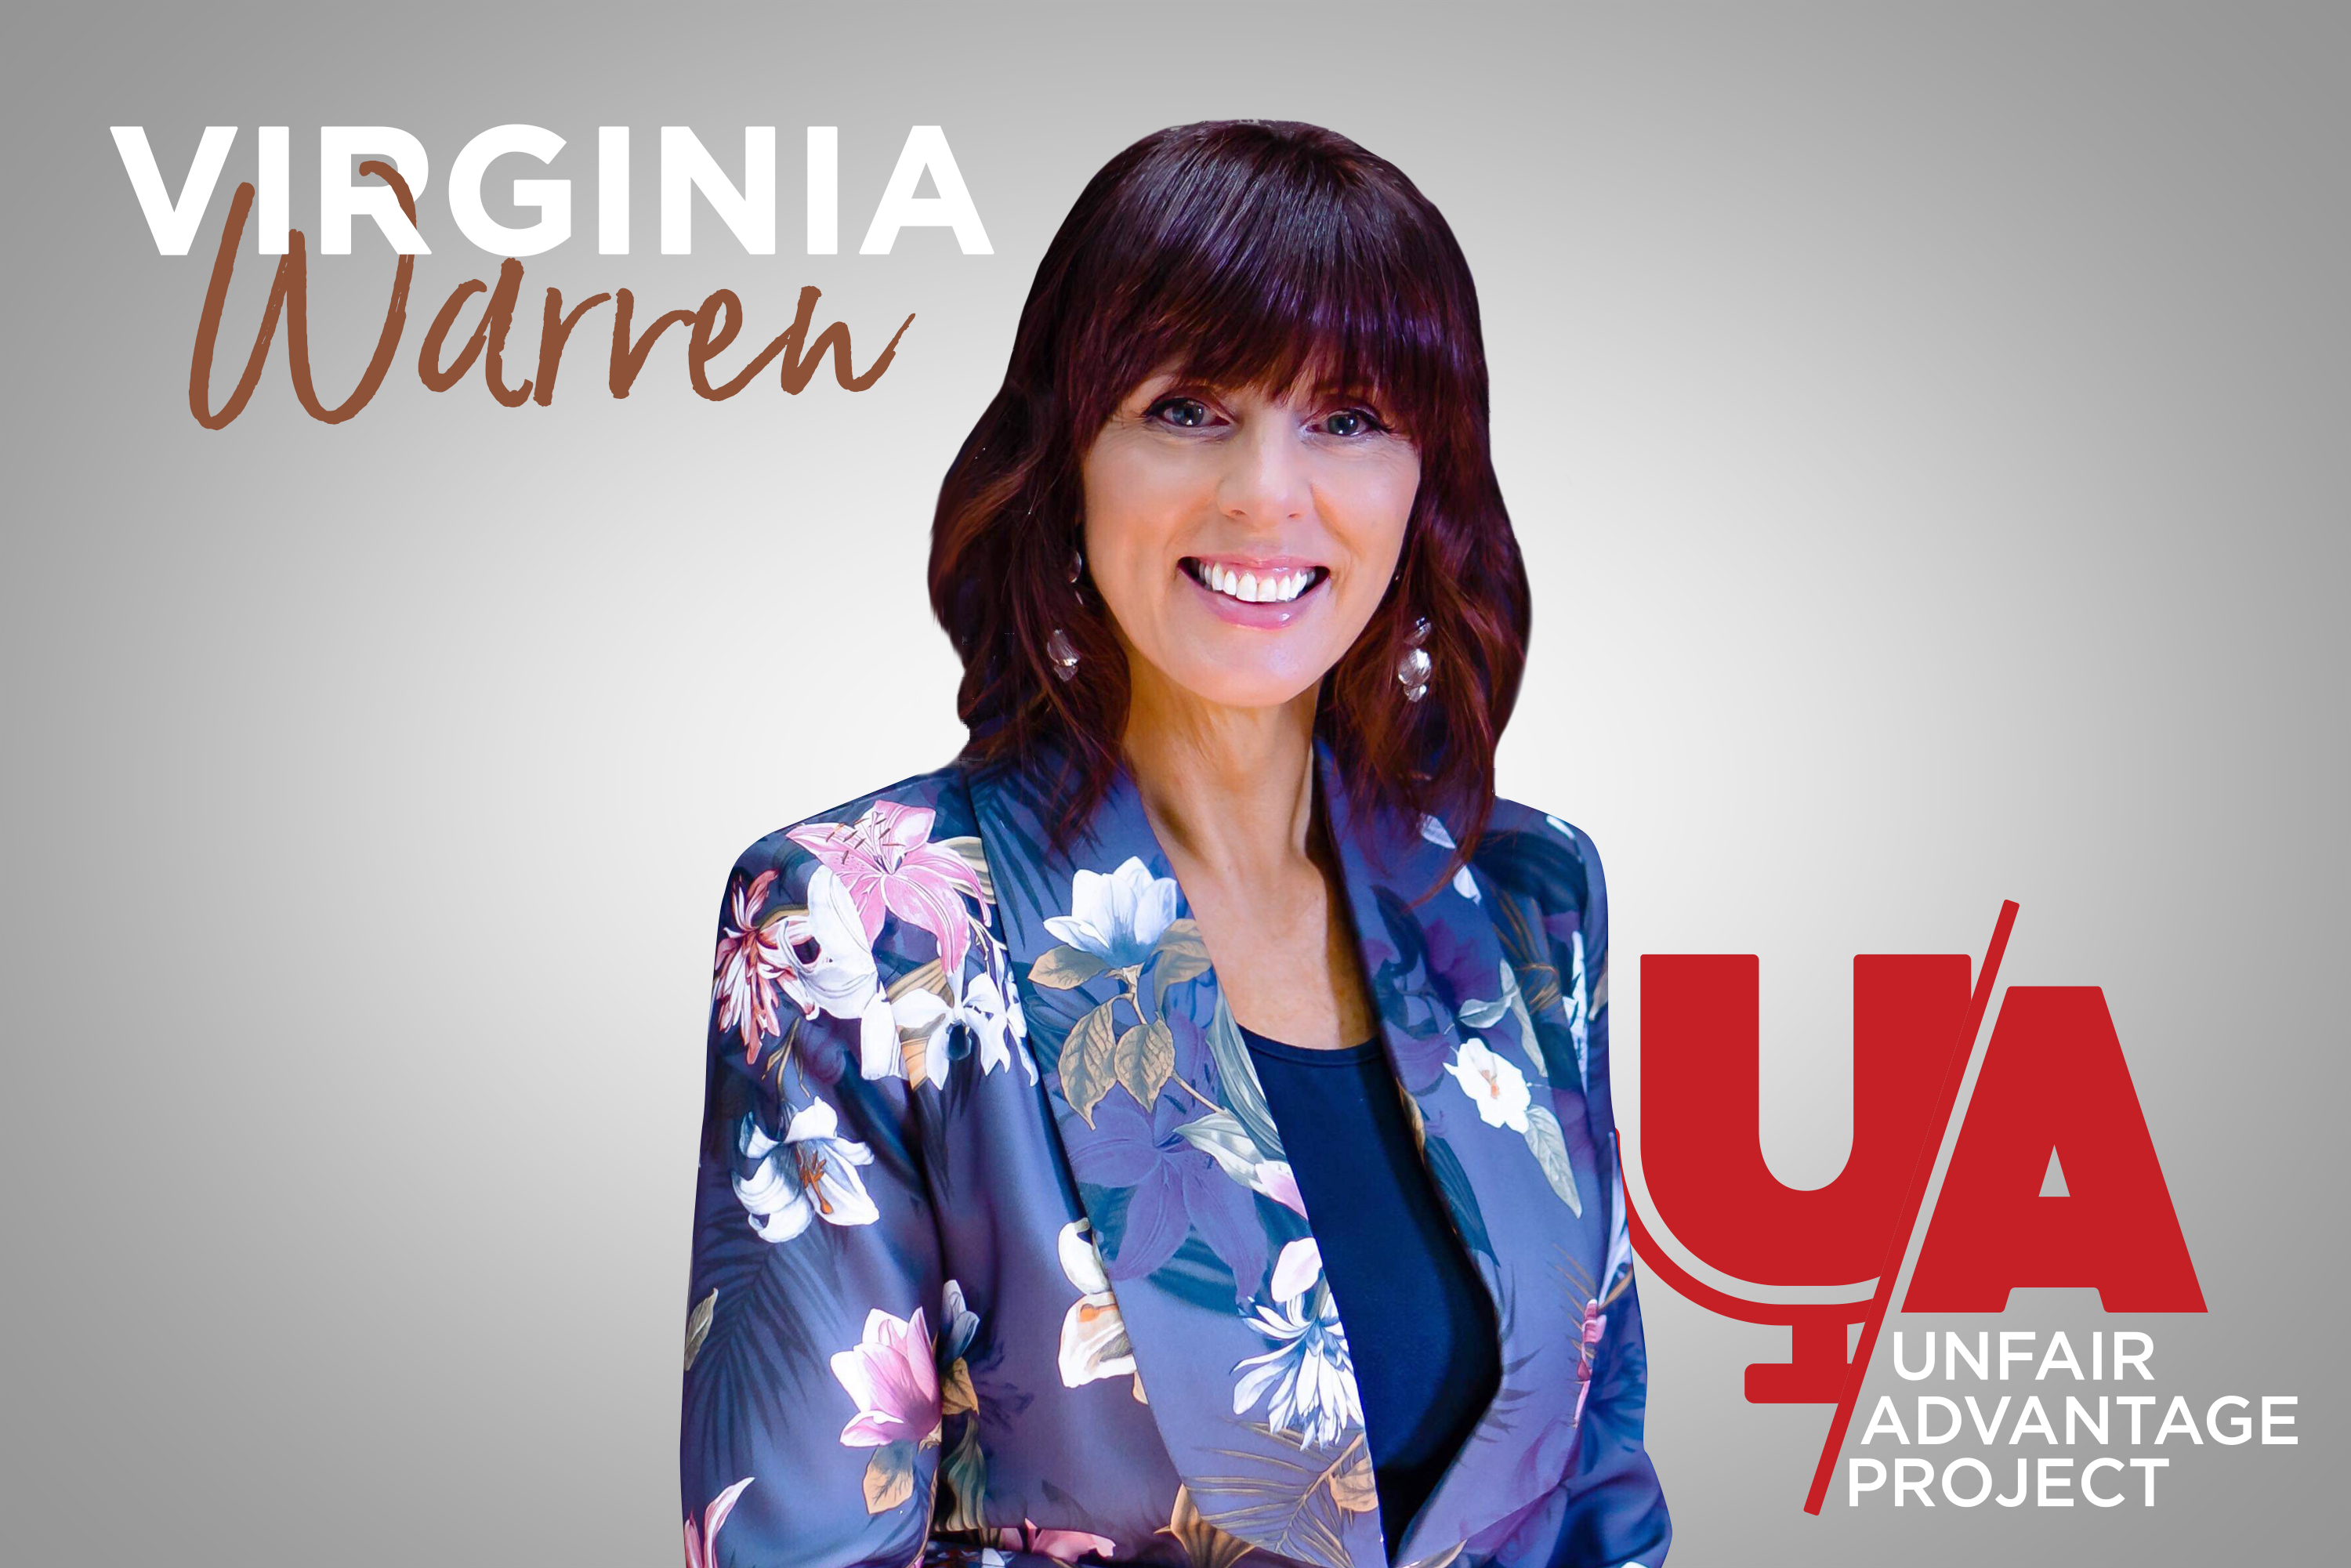 Episode 29- Finding gold in your conflict with Virginia Warren